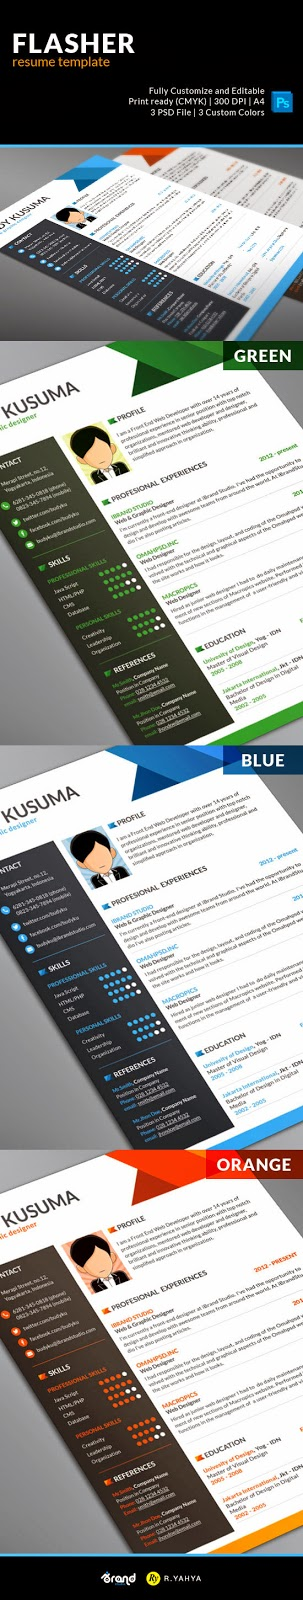 Flasher Resume PSD Template